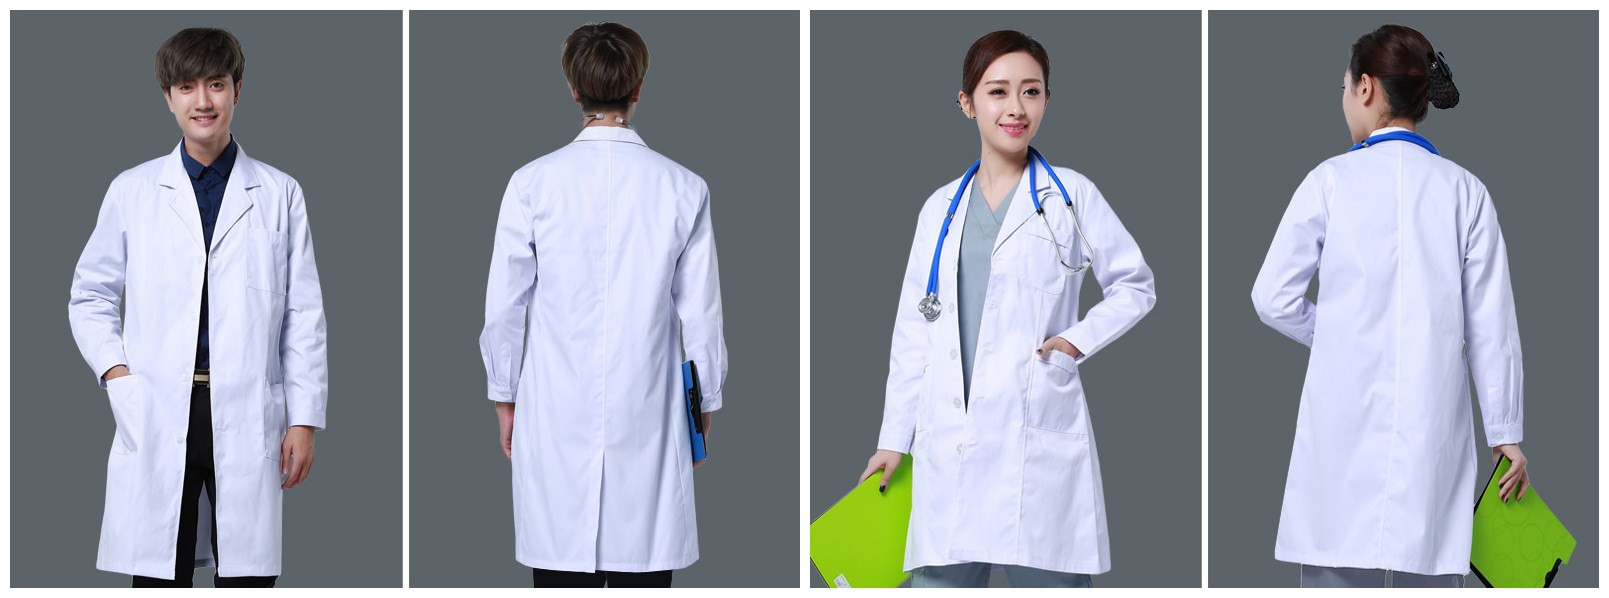 bleached white fabric for doctor uniform